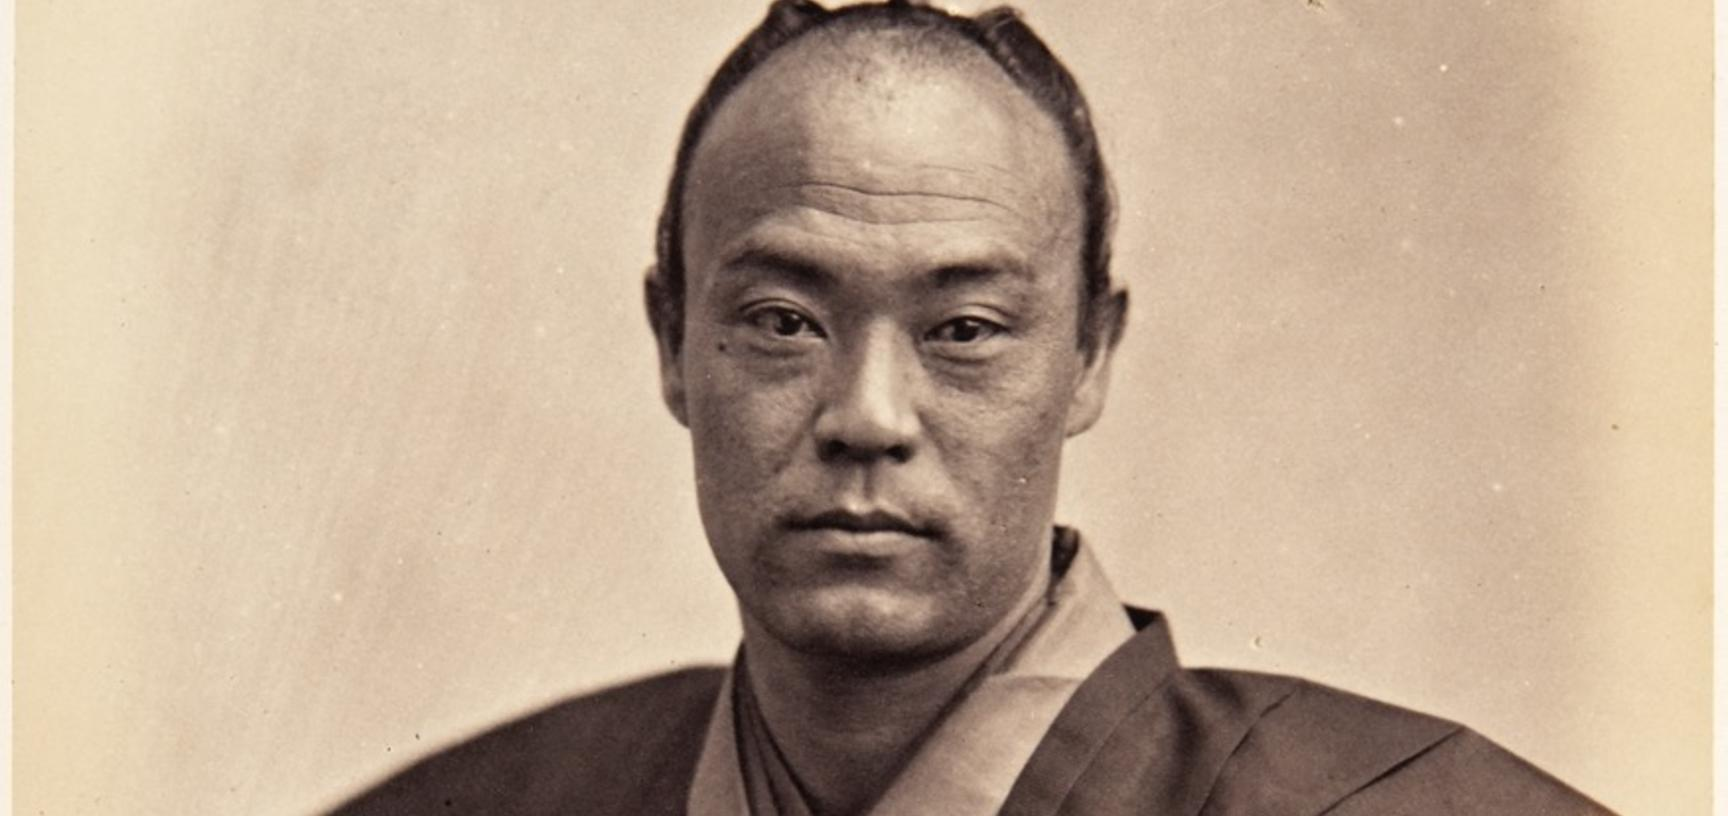 Portrait of Jirōtarō Saitō, thirty-four-year-old samurai and censor on the Ikeda mission to France, pictured wearing traditional dress and carrying a long sword (katana). Photograph by Jacques-Philippe Potteau. Paris, France. 1864. (Copyright Pitt Rivers